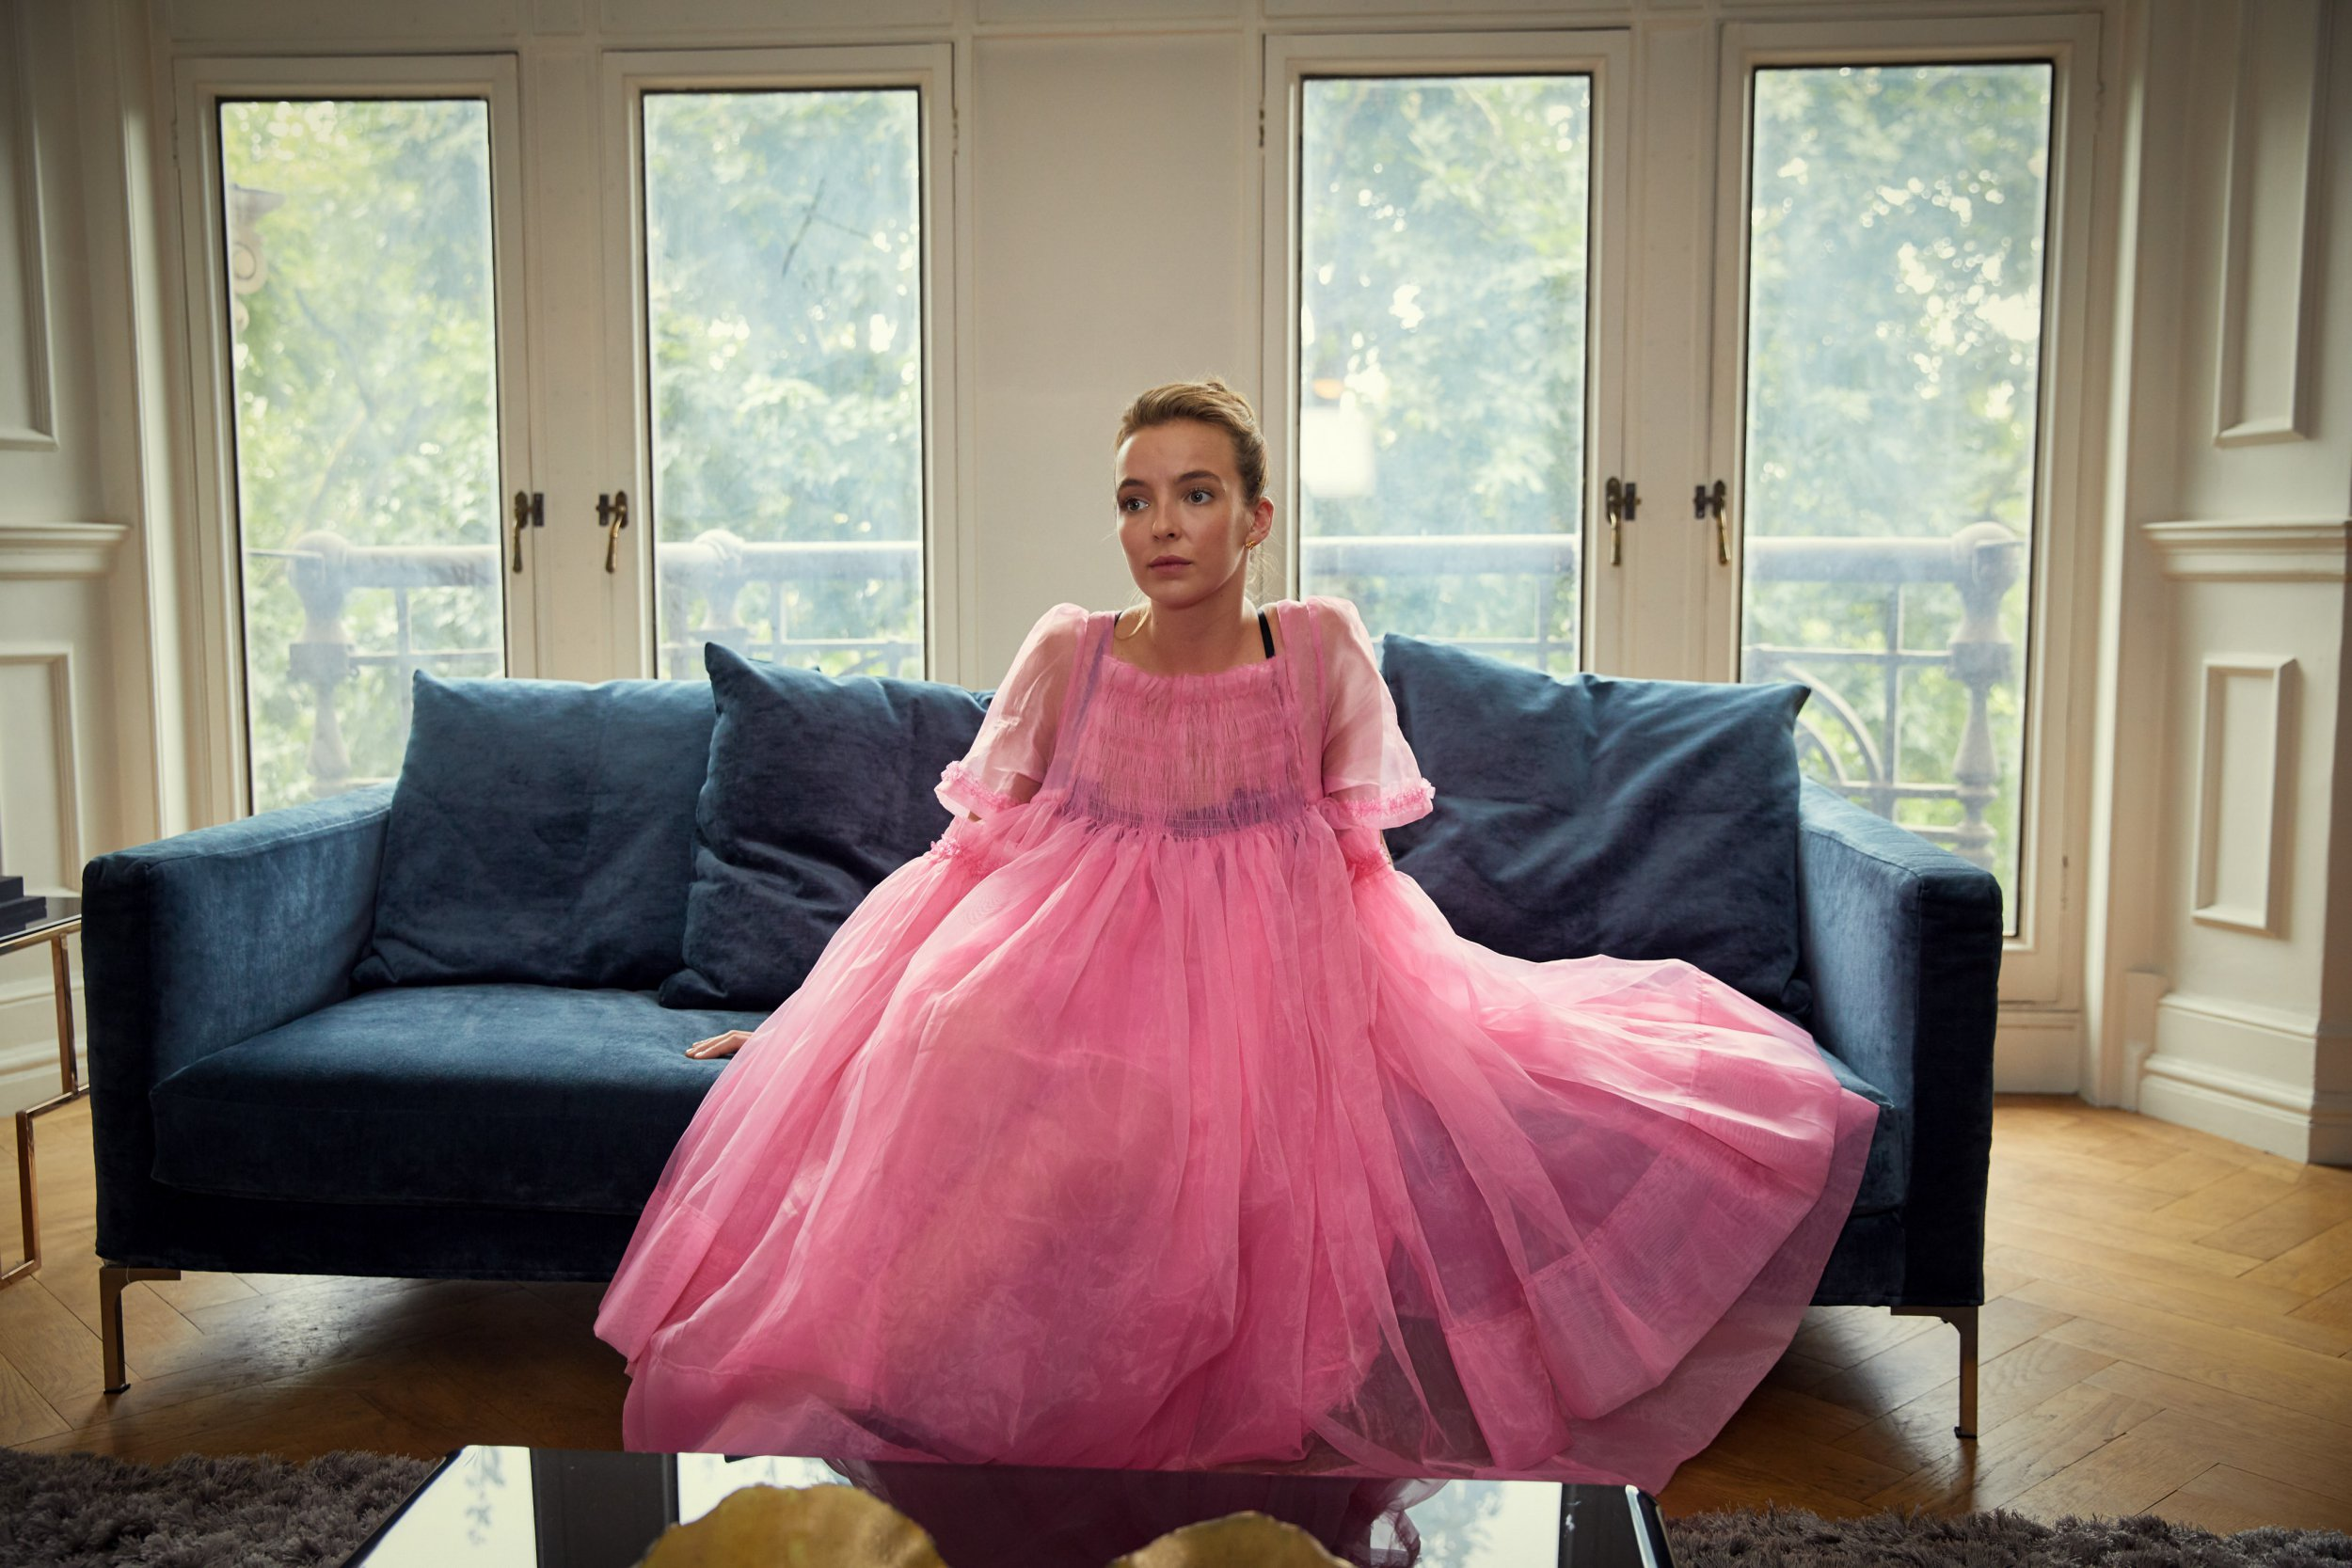 Jodie Comer gives Killing Eve fans a glimpse into season 2 with 'dangerous weapons' spoiler pic